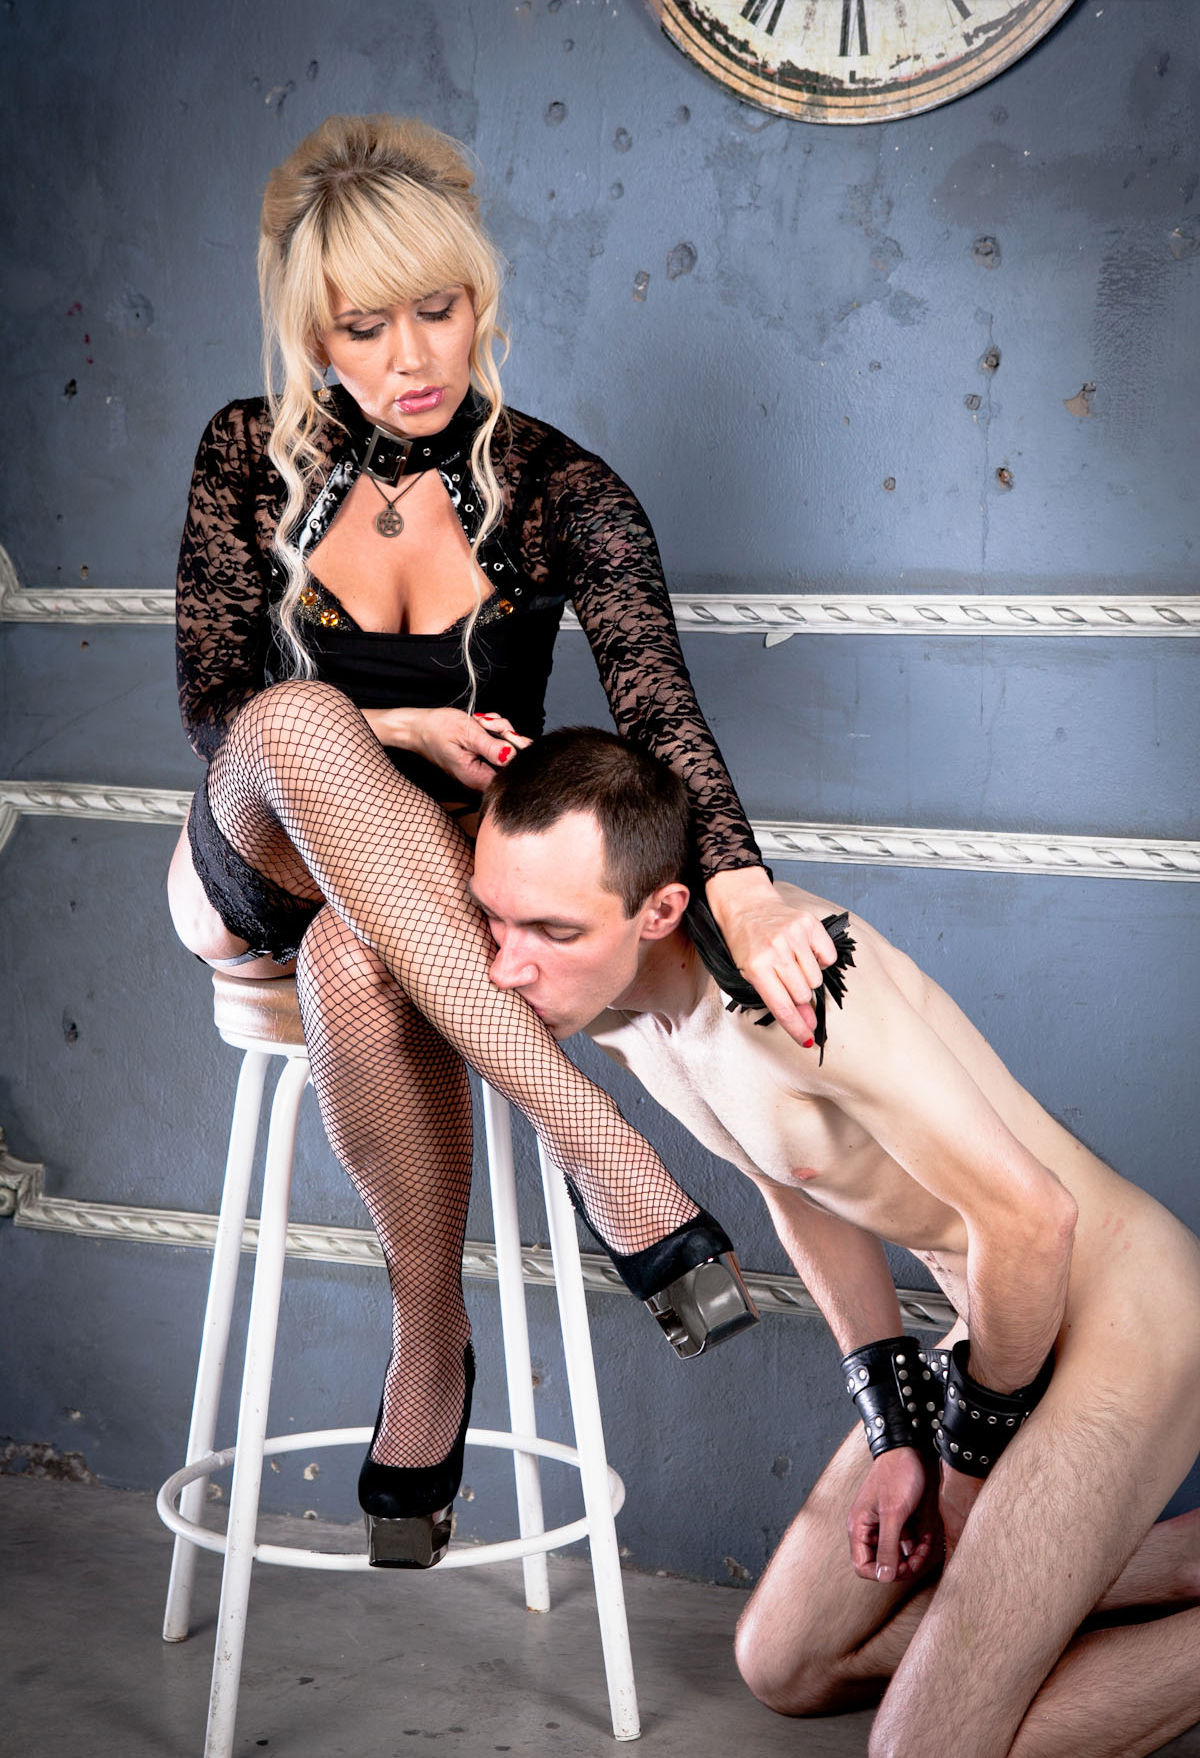 Female domination golden shower-7002